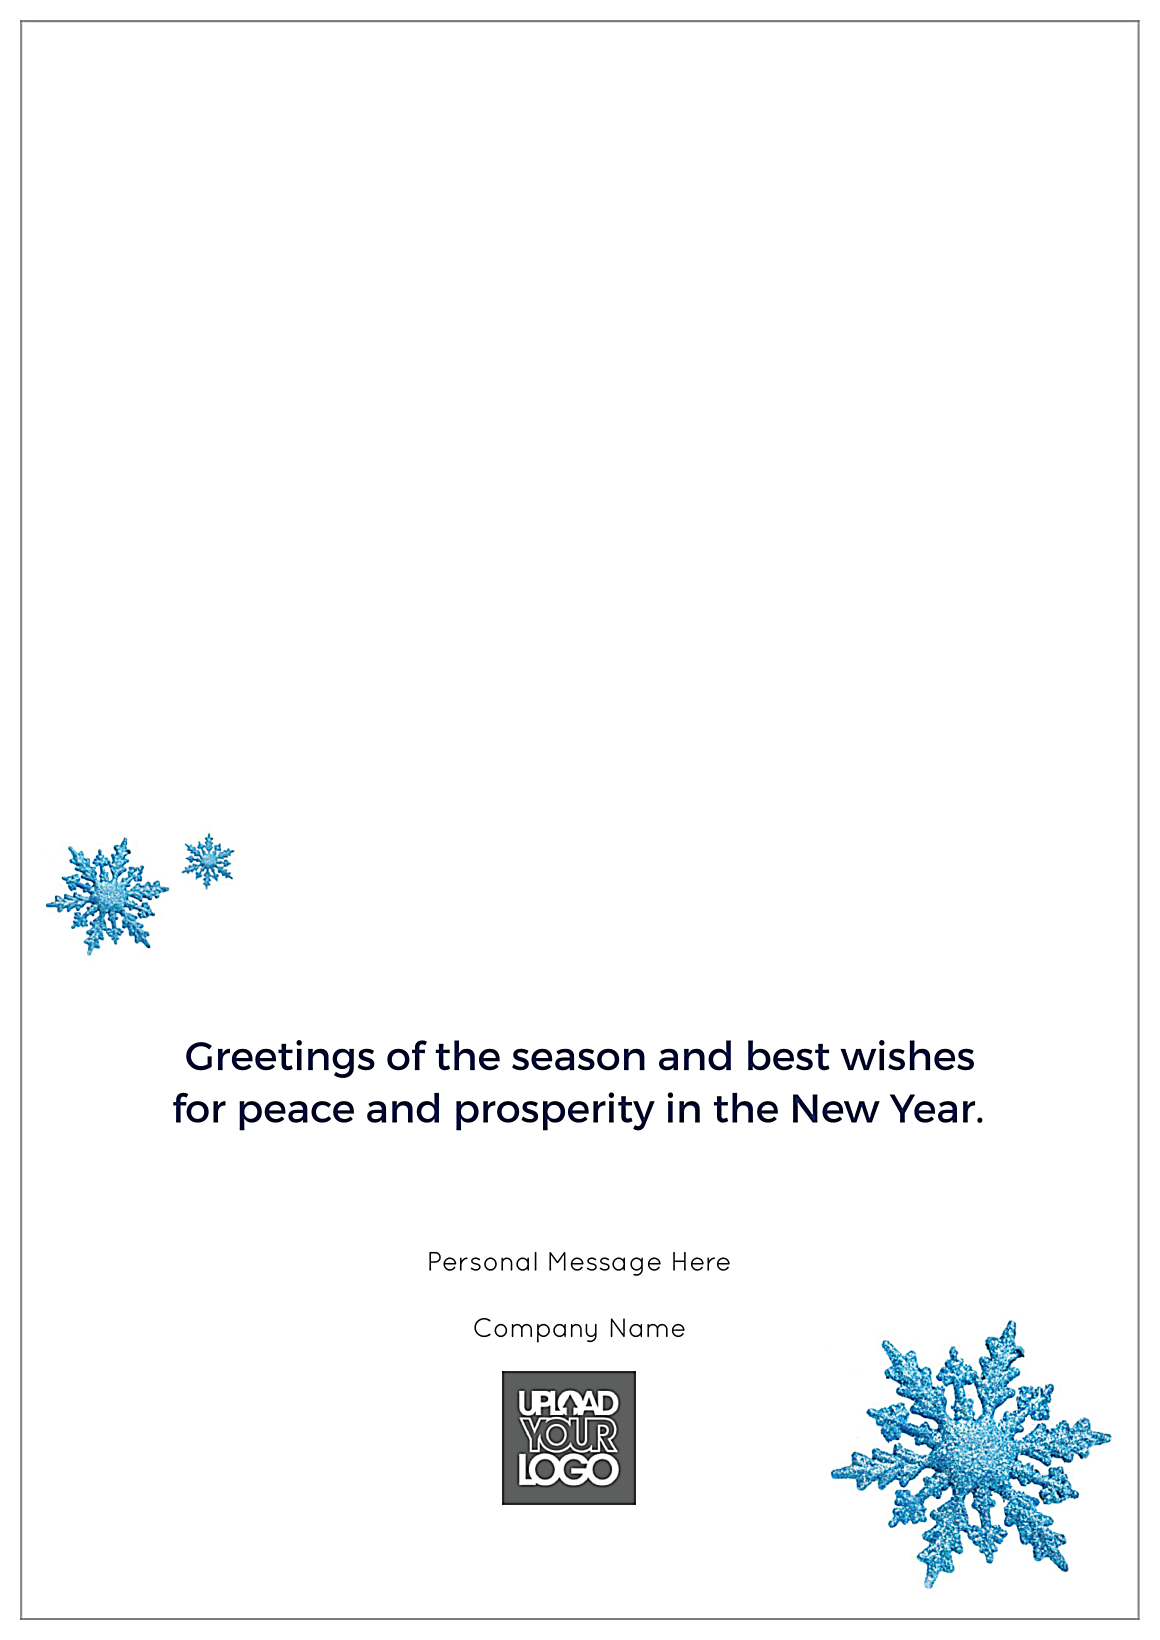 Blue Happy Holidays back - Greeting Cards Maker